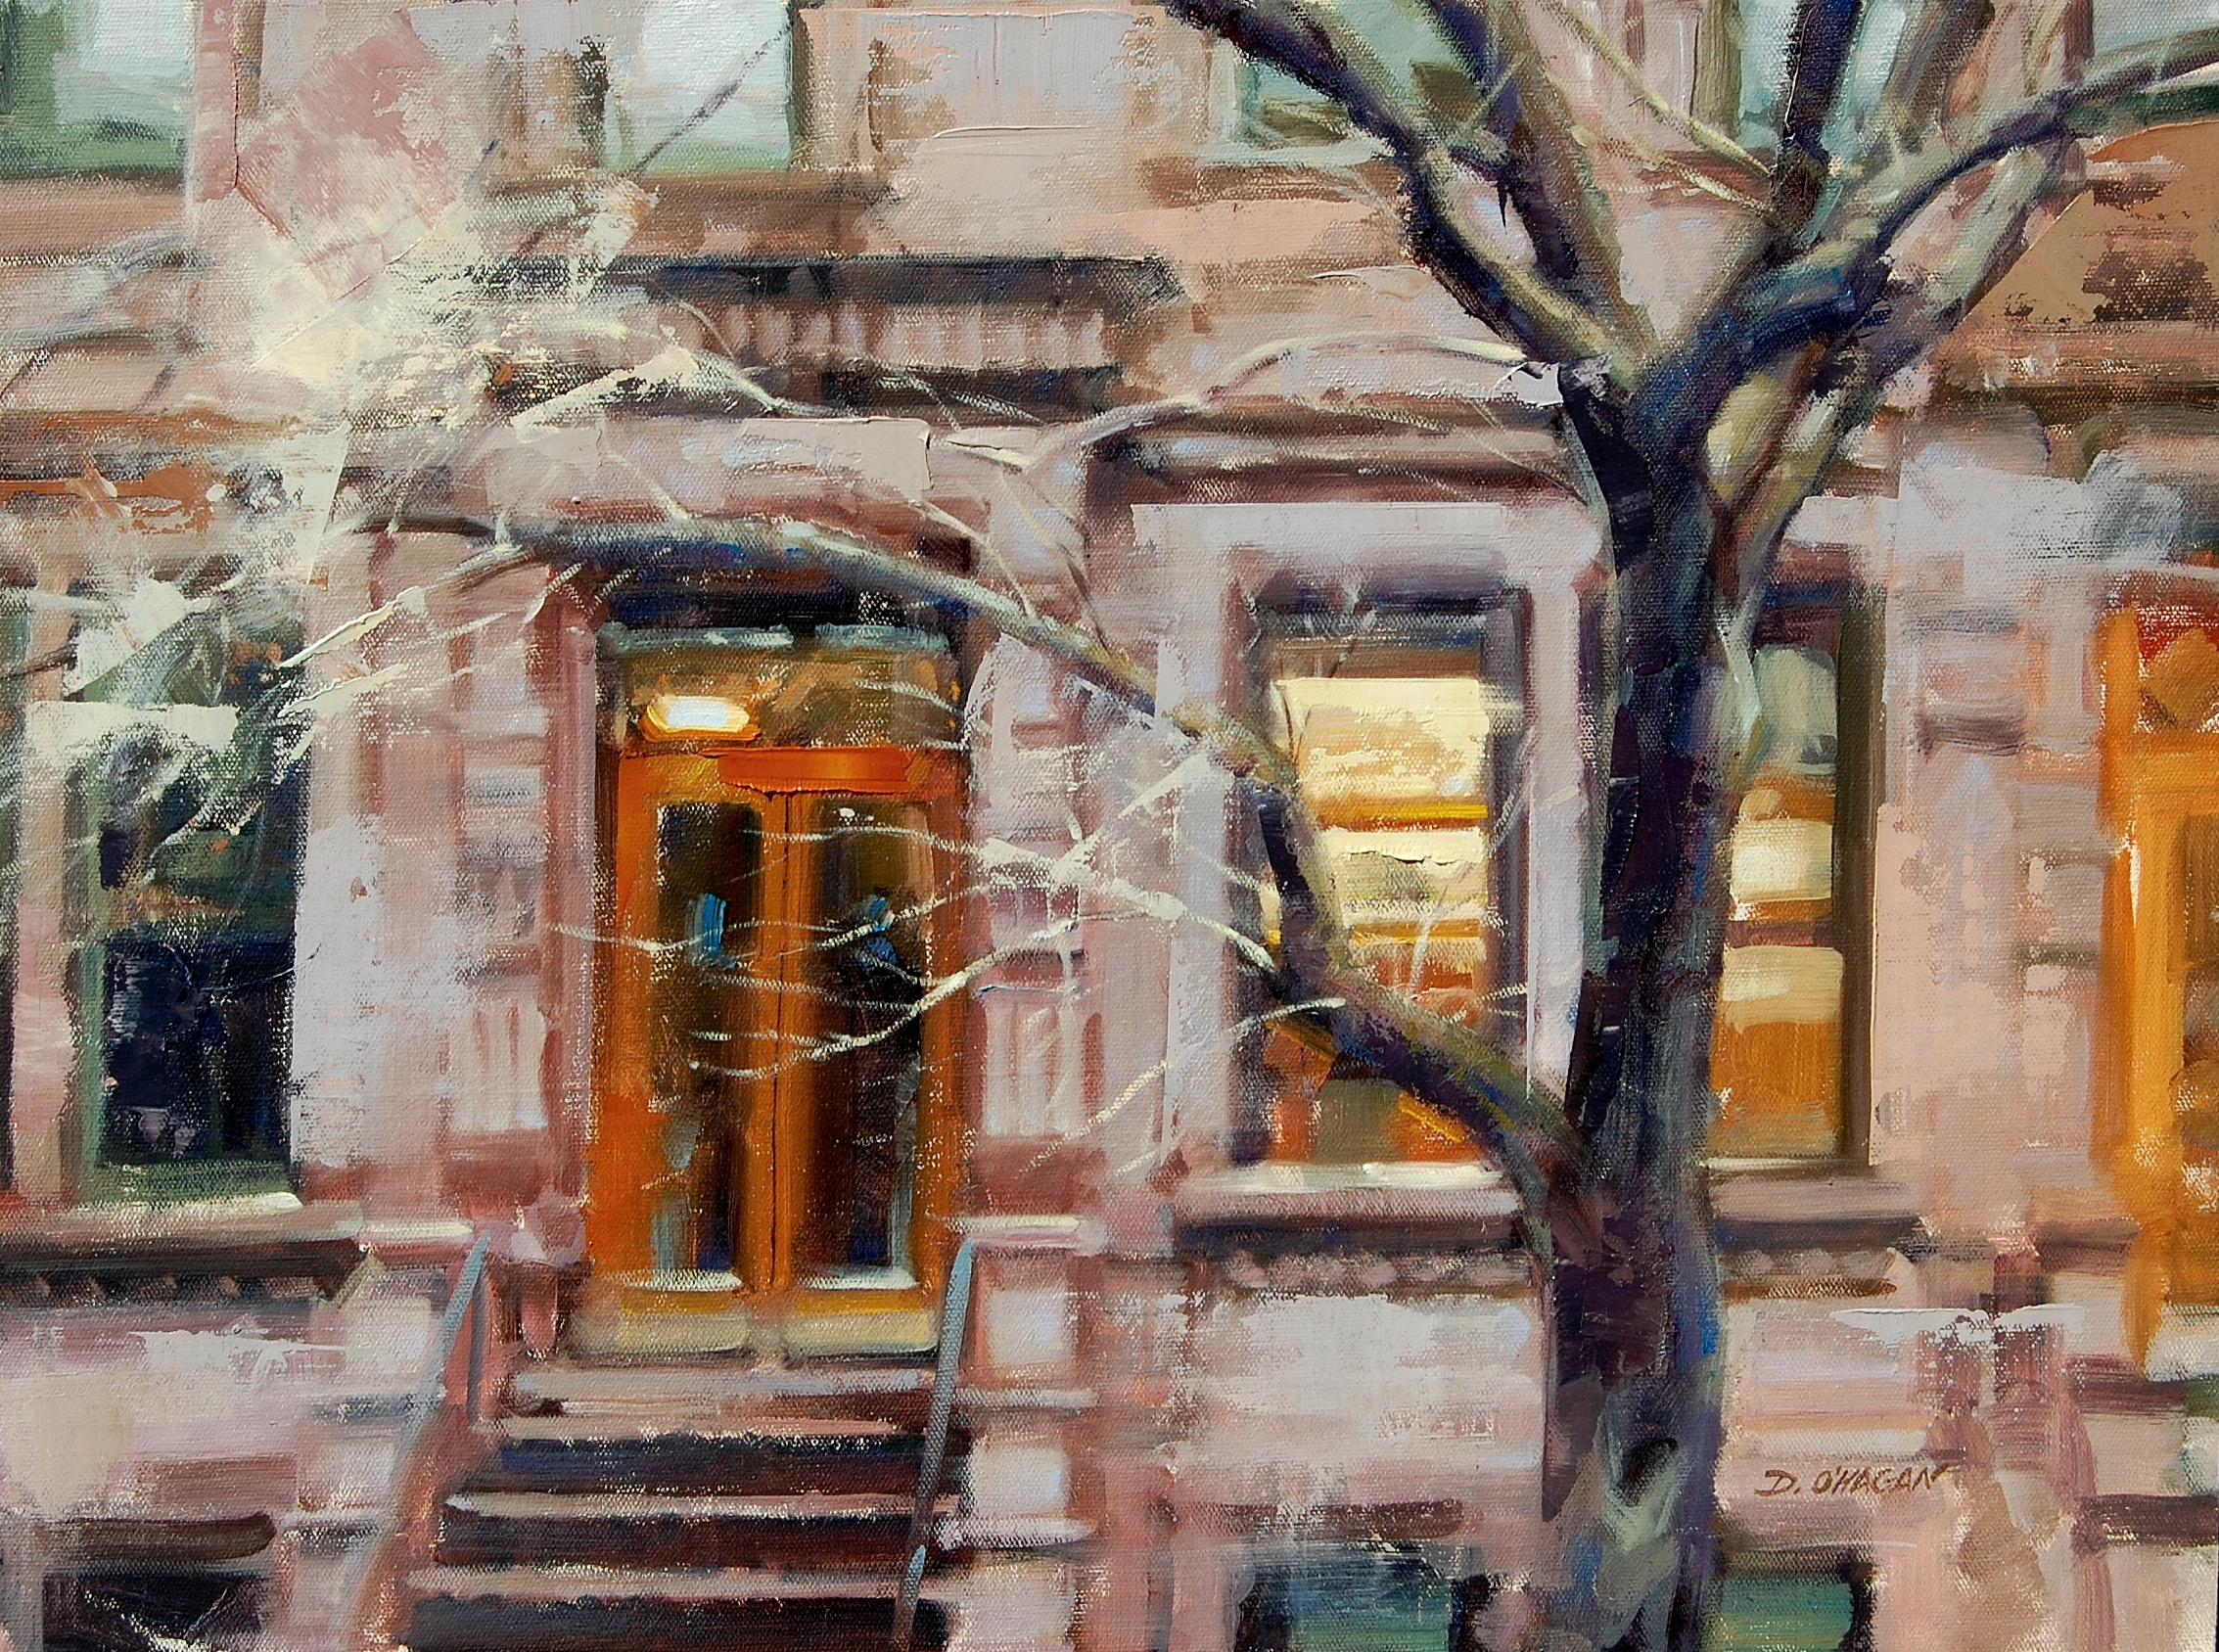 """Brownstones, NYC""</br>18"" x 24""</br>Oil"